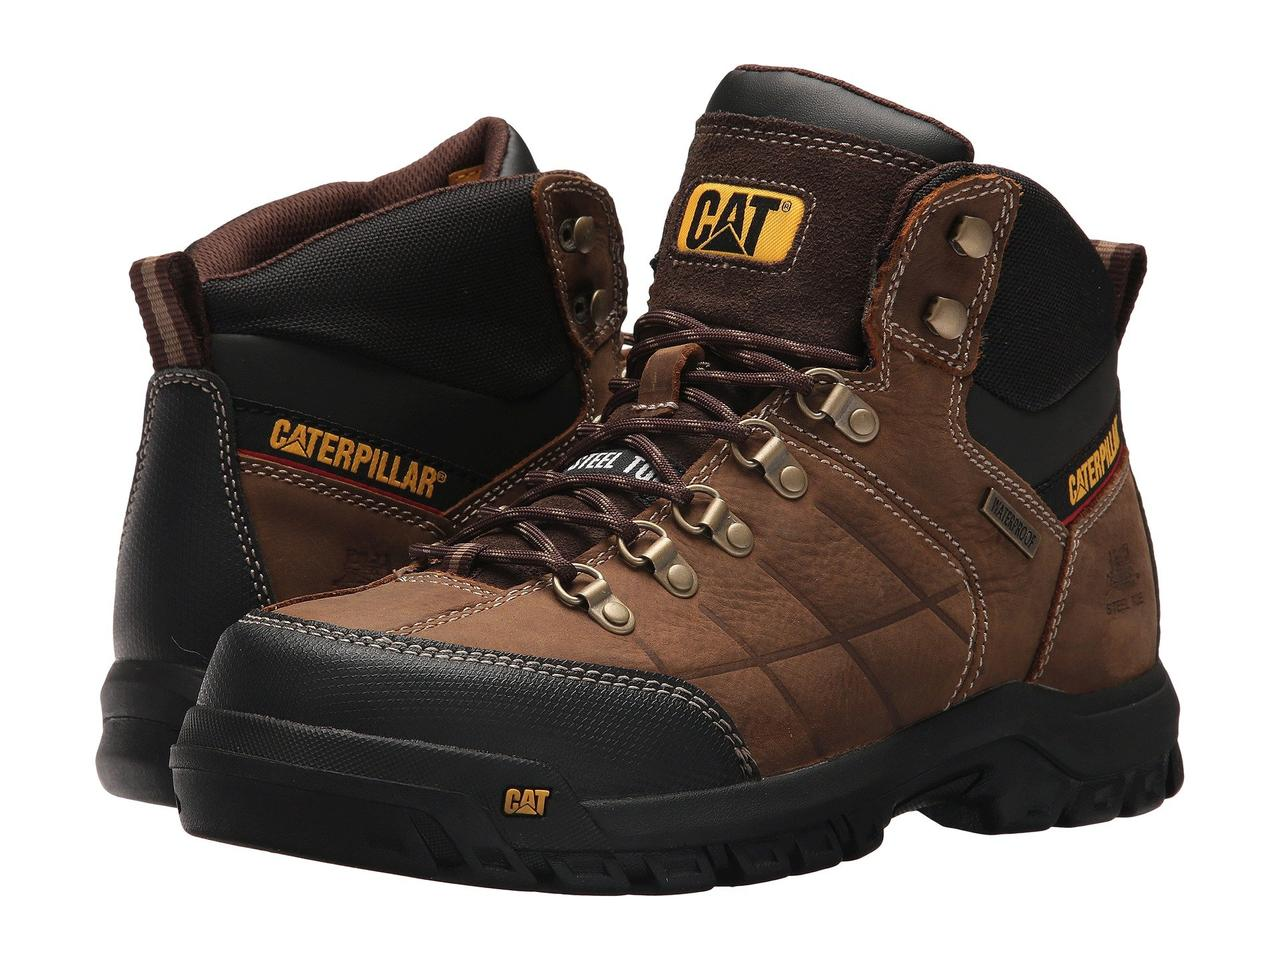 Ботинки/Сапоги (Оригинал) Caterpillar Threshold Waterproof Steel Toe Brown